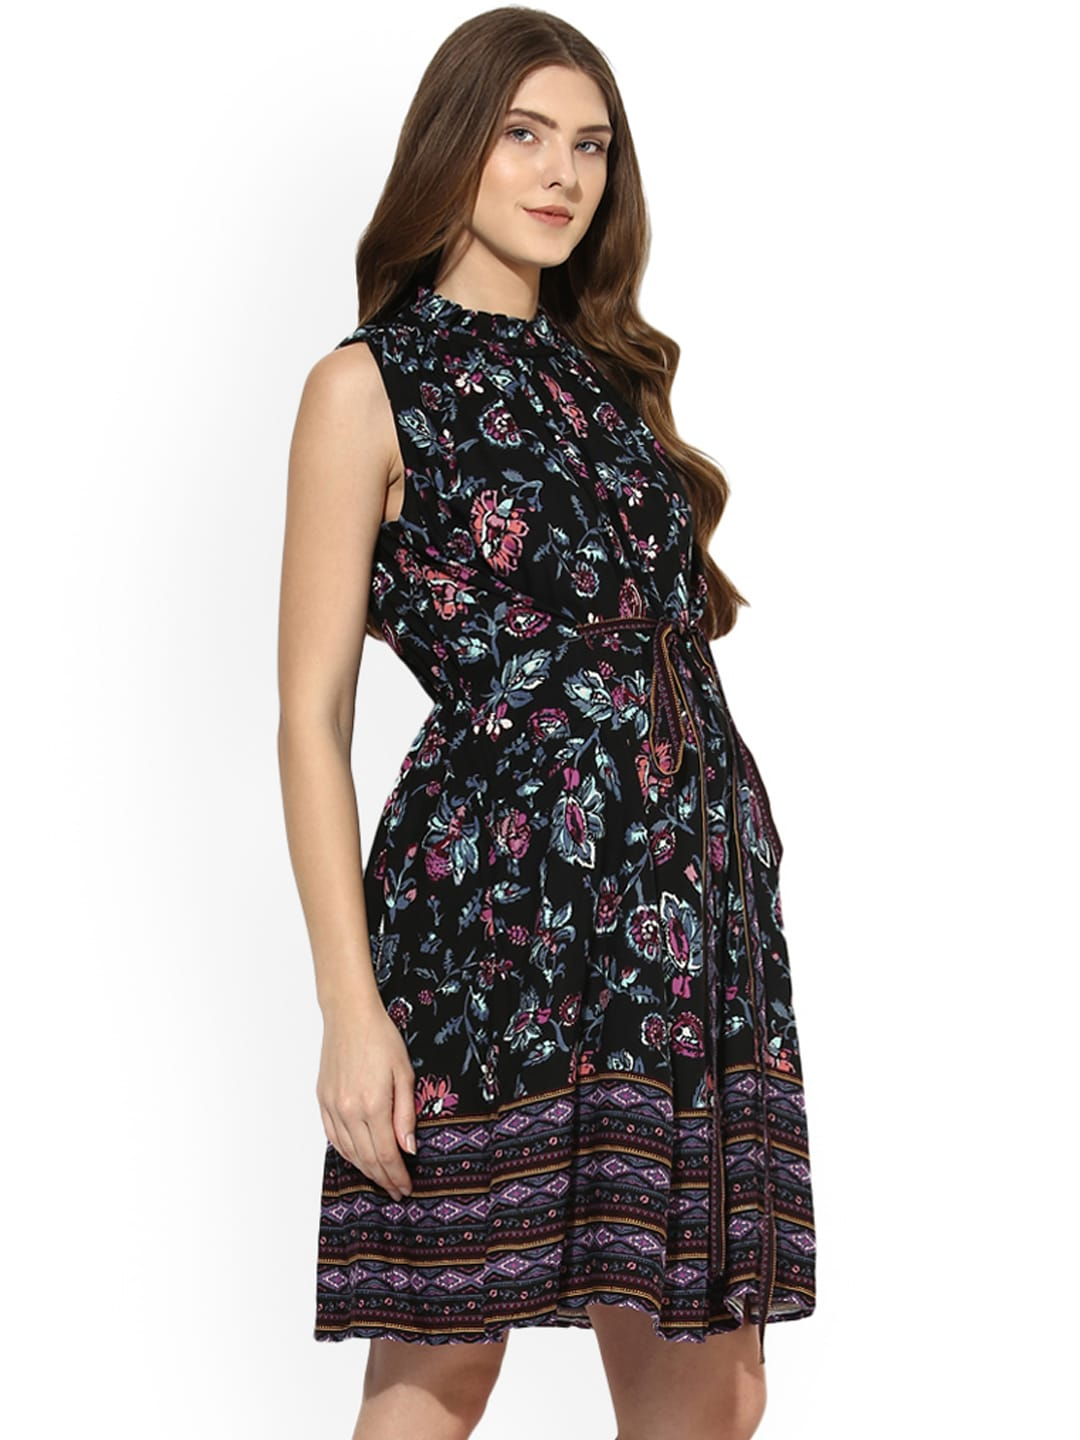 Maternity dresses buy pregnancy dresses online myntra ombrellifo Gallery